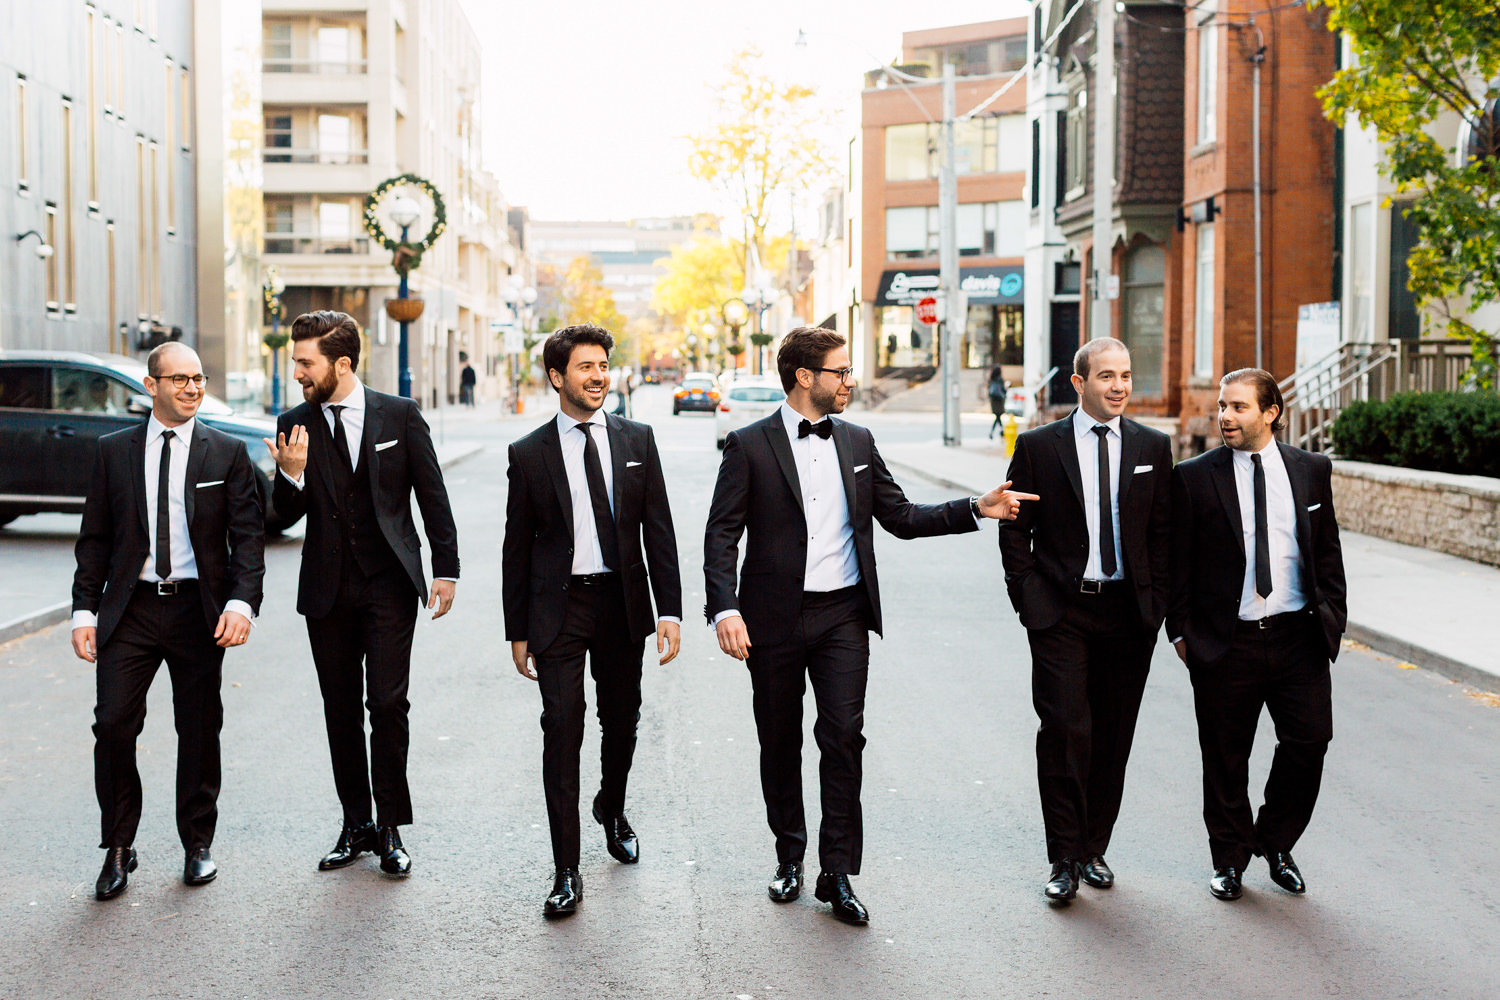 toronto groom's men